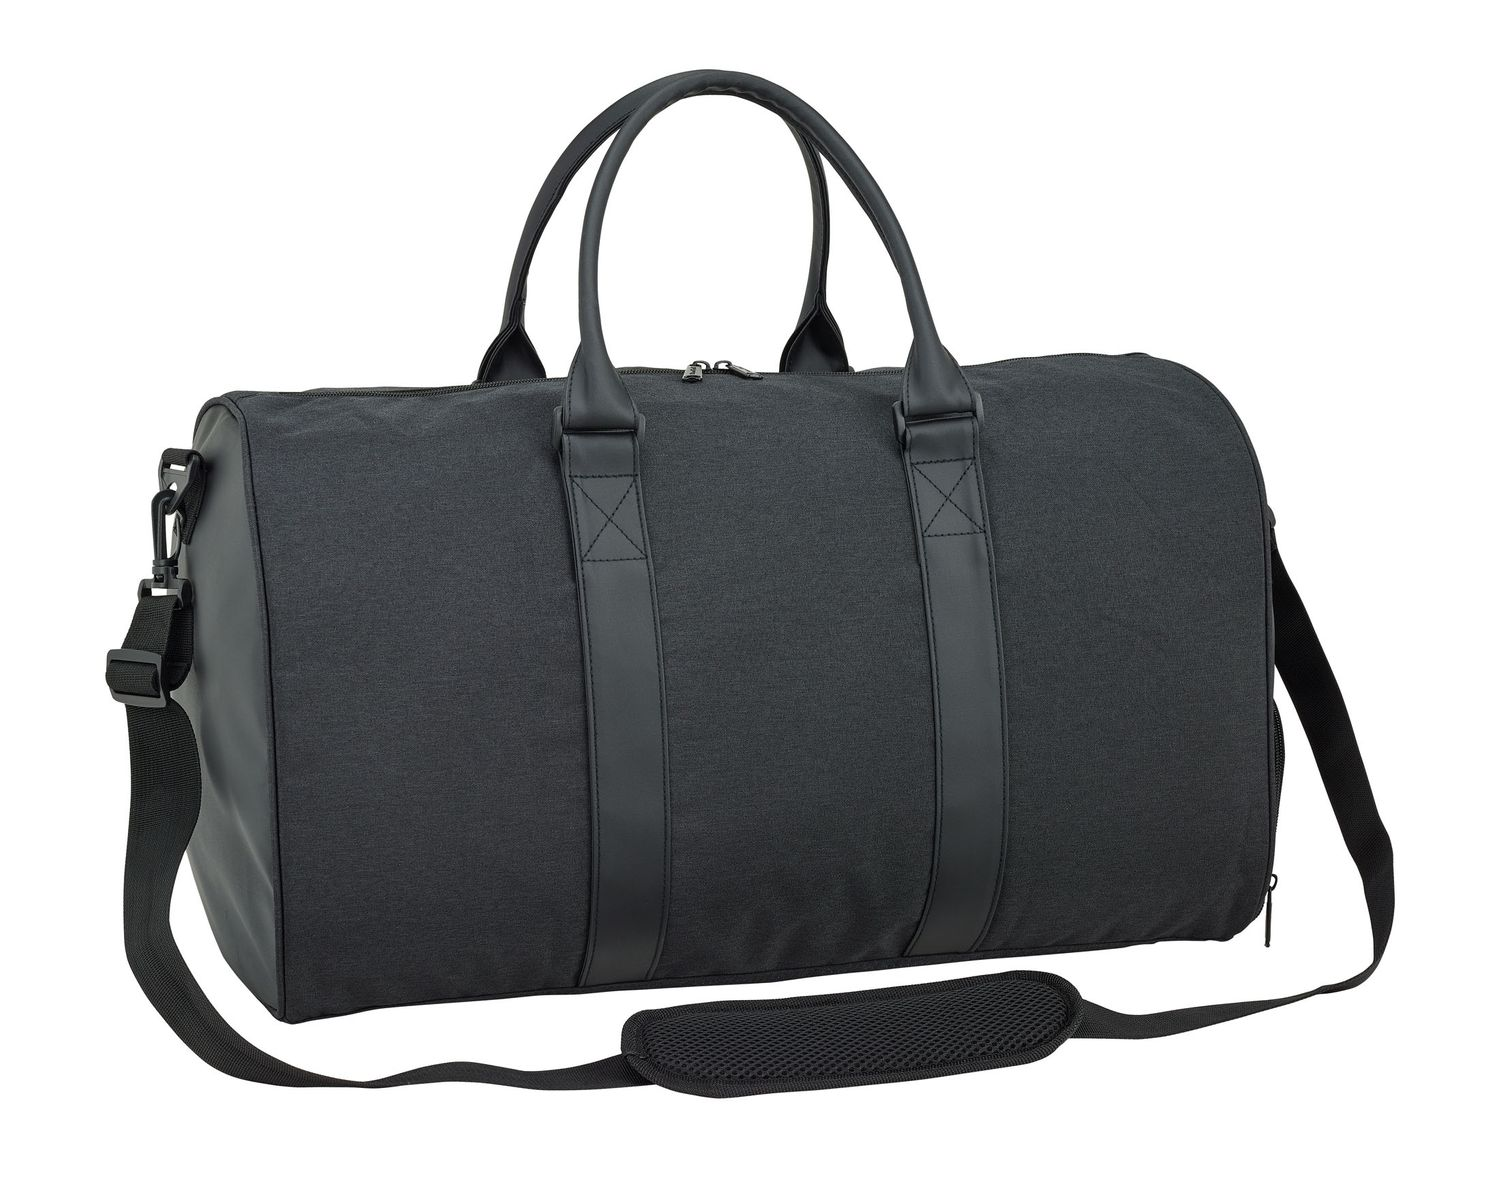 Blackfit8 Black & Black Sports Bag – image 2